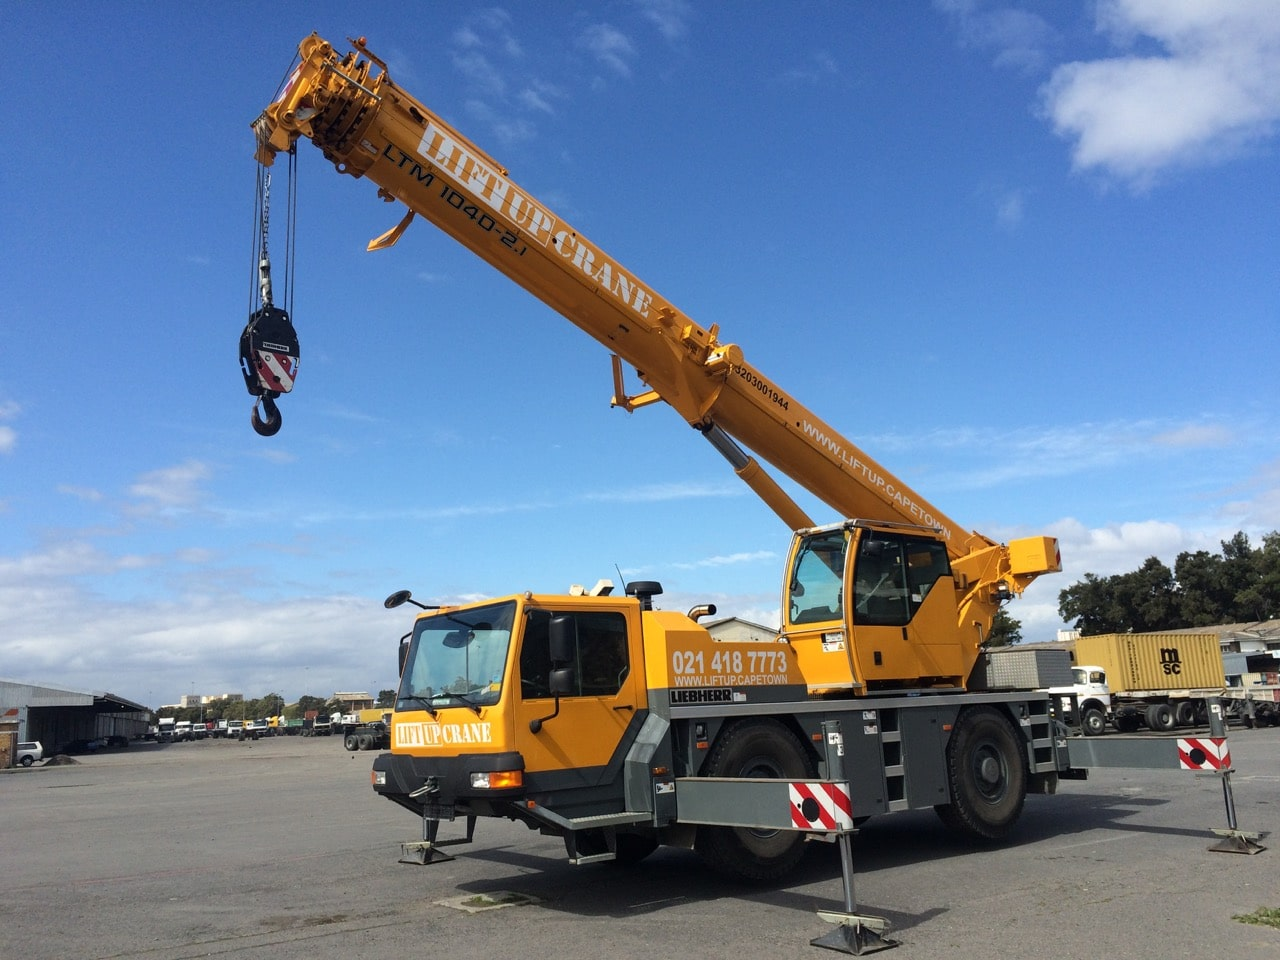 Our 40-ton Liebherr mobile crane on its outriggers.